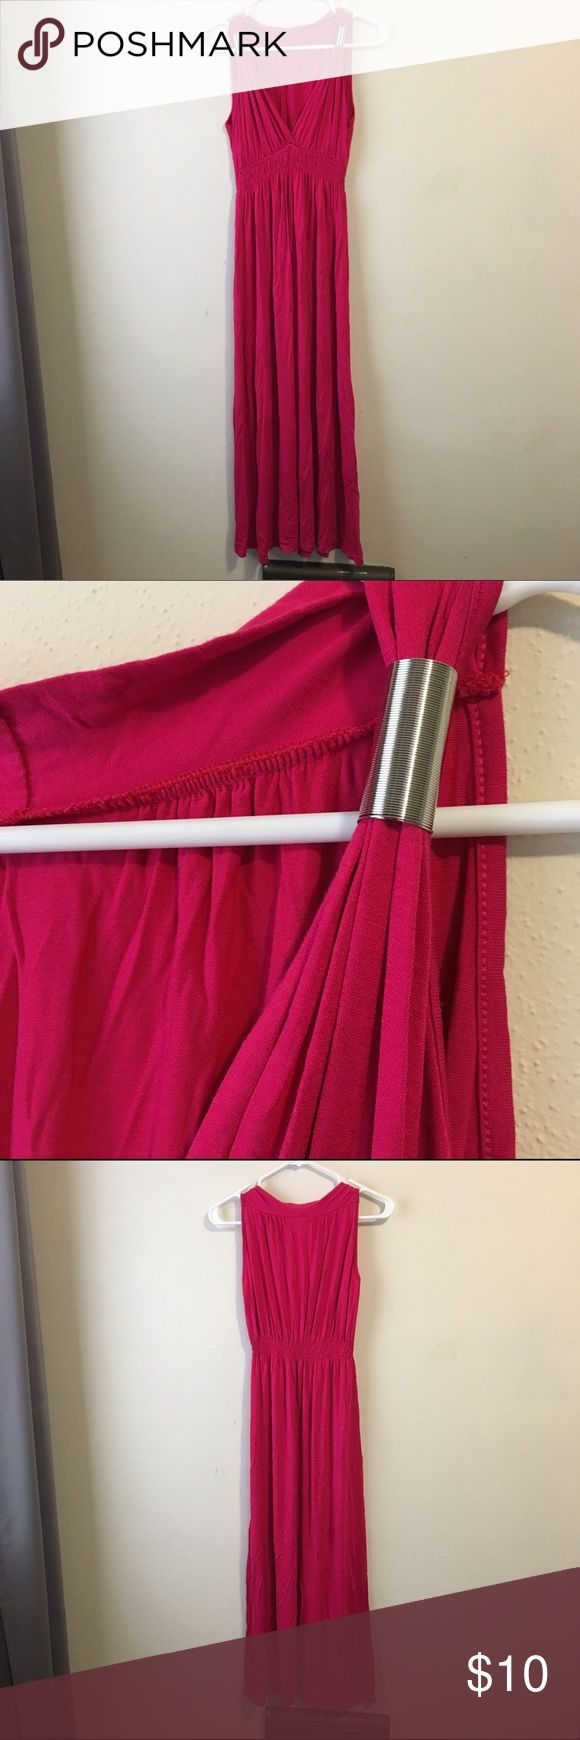 Pink maxi dress. Light and flowy pink maxi dress with adjustable silver coil details on the straps. Like new. Don't know brand. Dresses Maxi